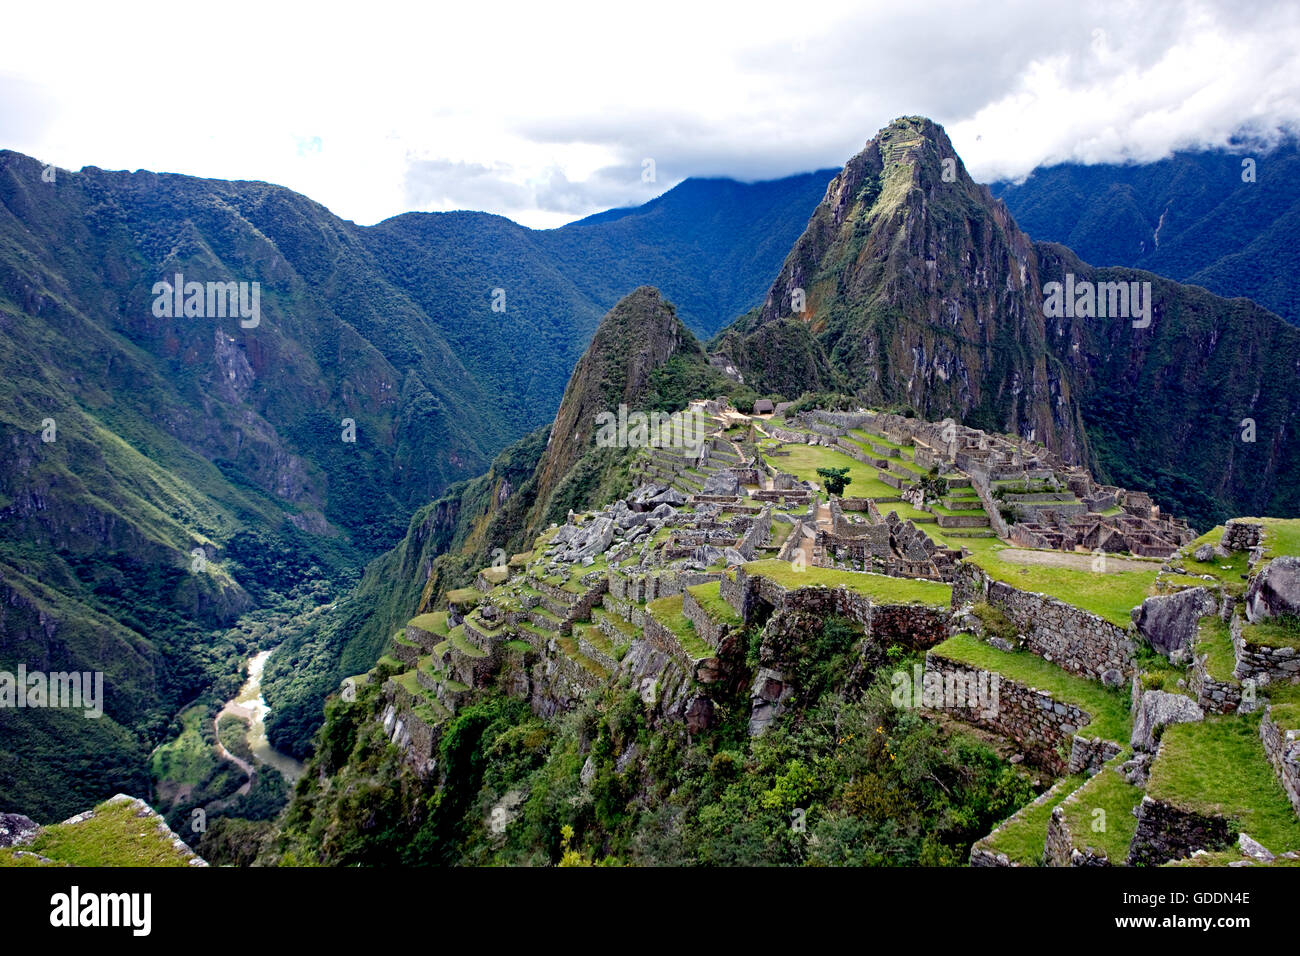 Machu Picchu, the Lost City of the Incas in Peru - Stock Image